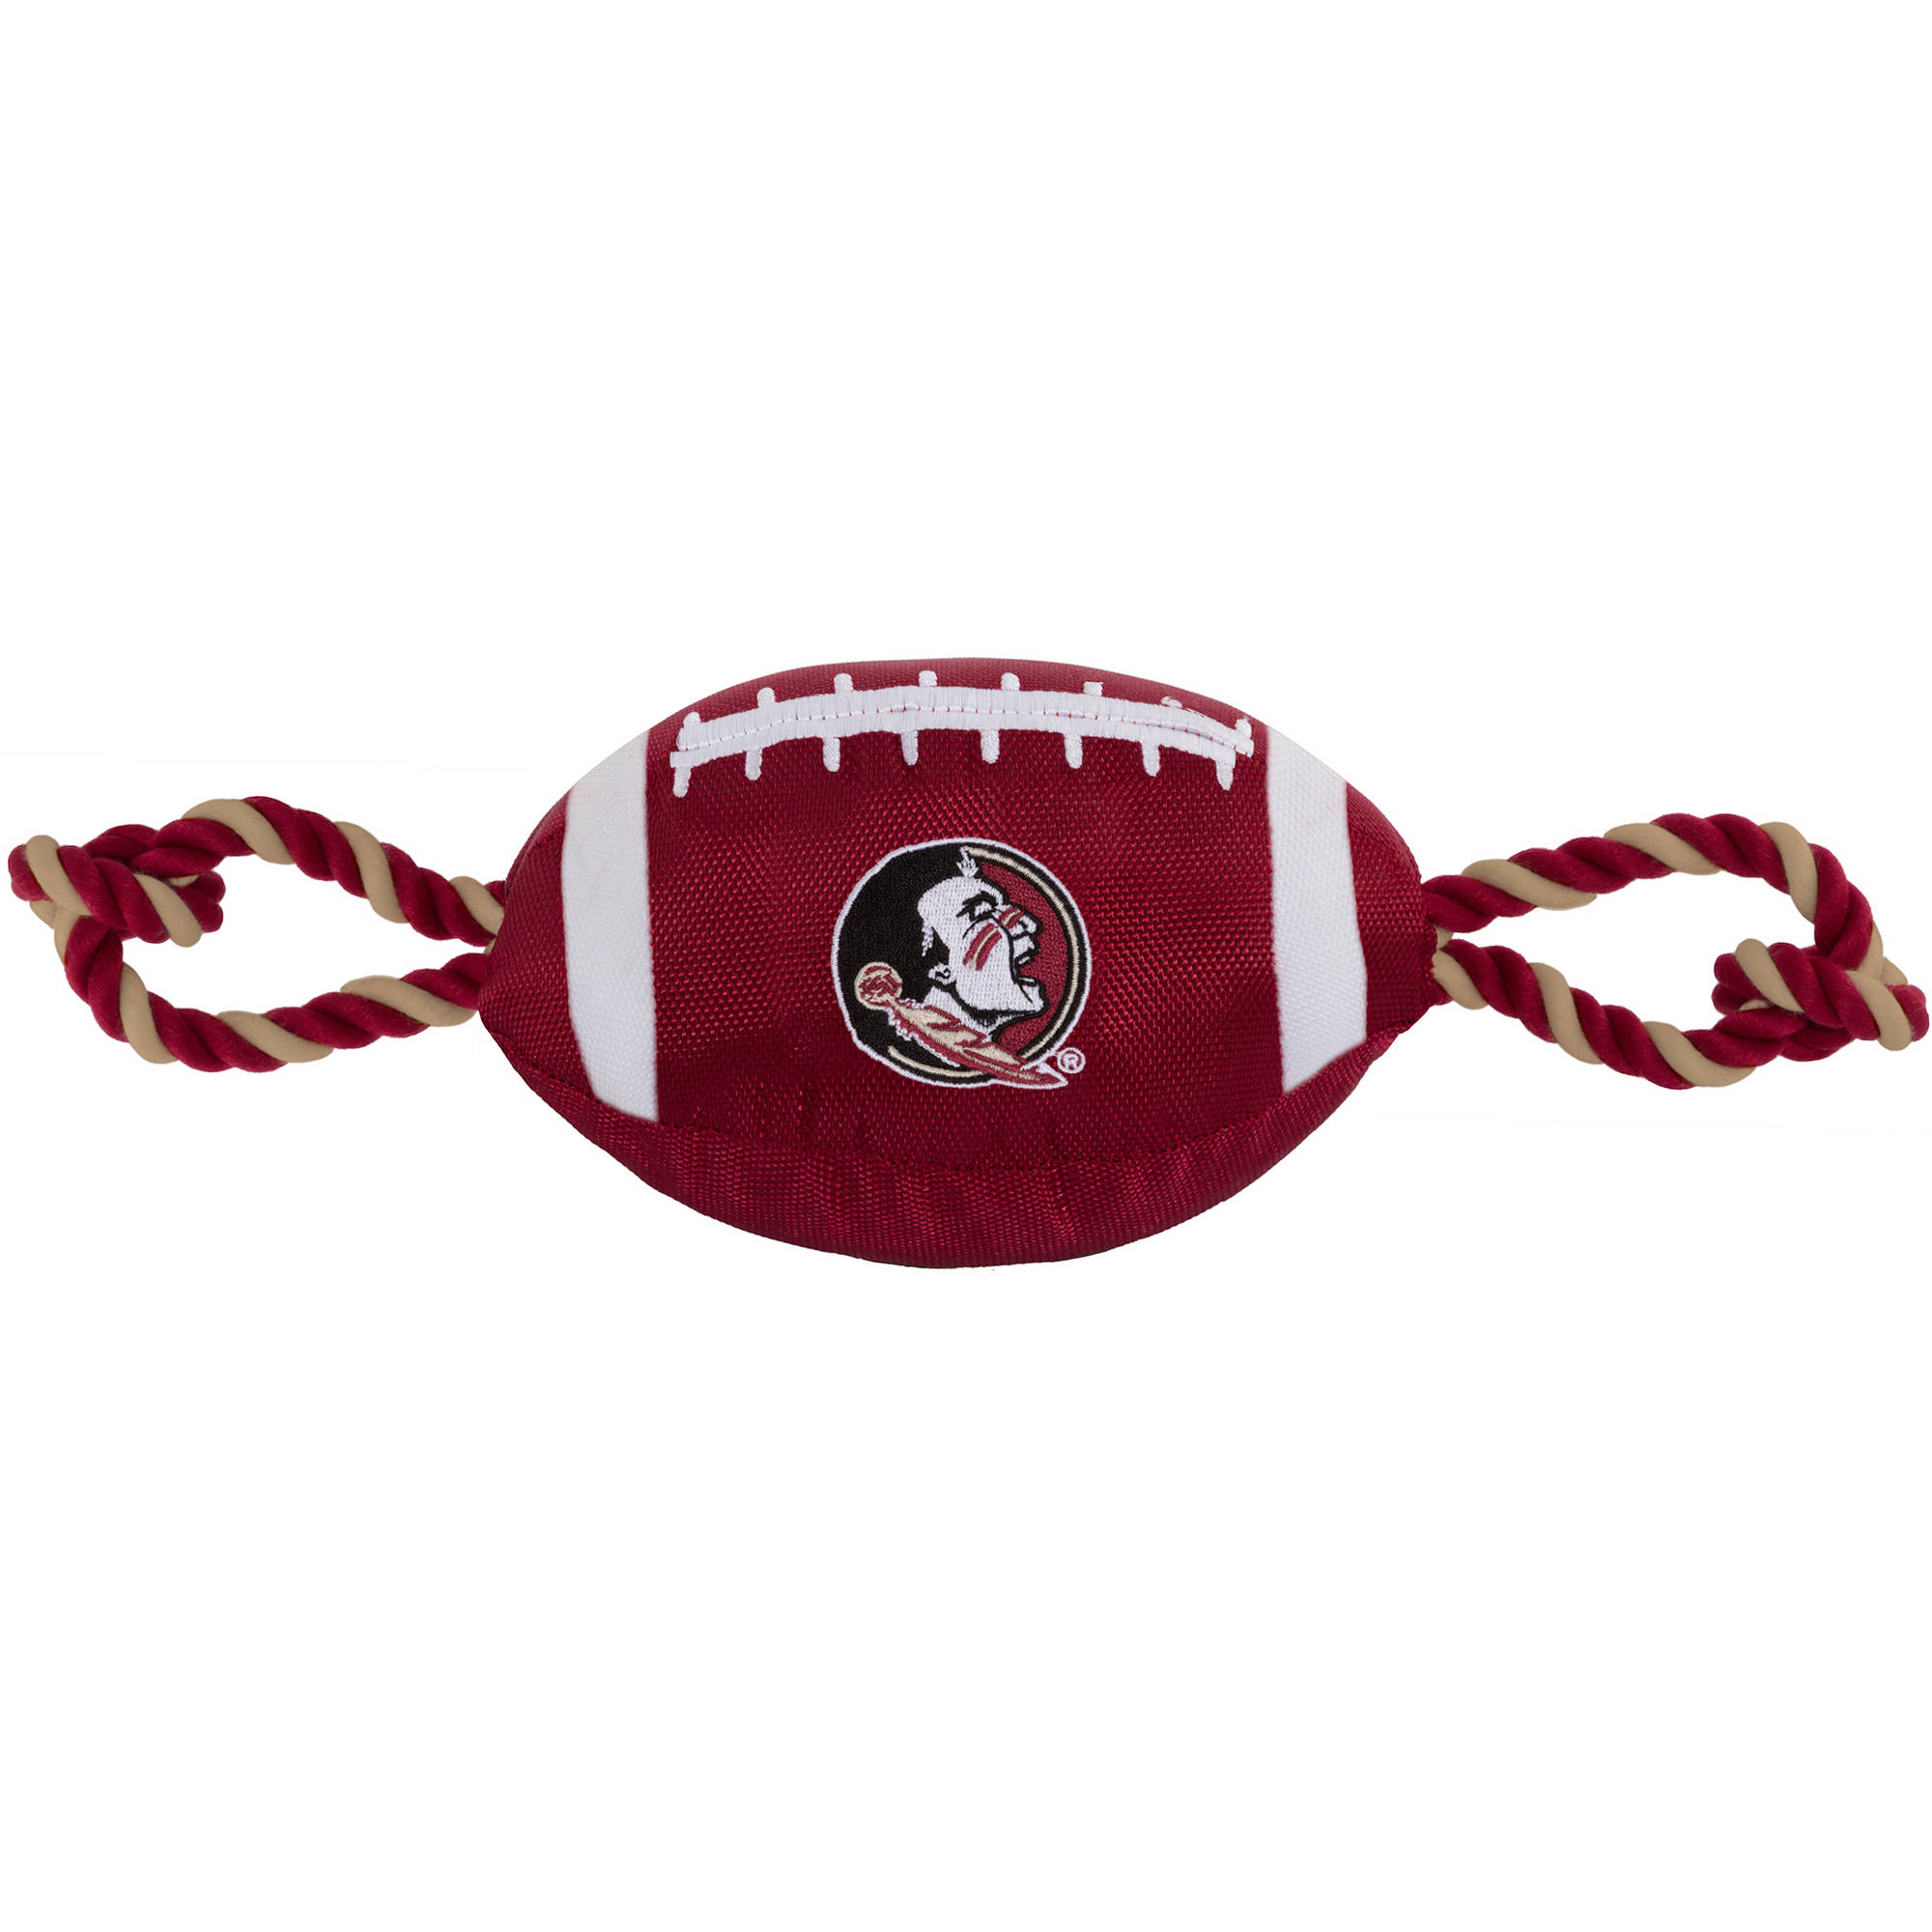 NCAA Florida State Seminoles Strong, Durable, Chewable Football Dog Toy with Inner Squeaker and Side Ropes, Officialy Licensed